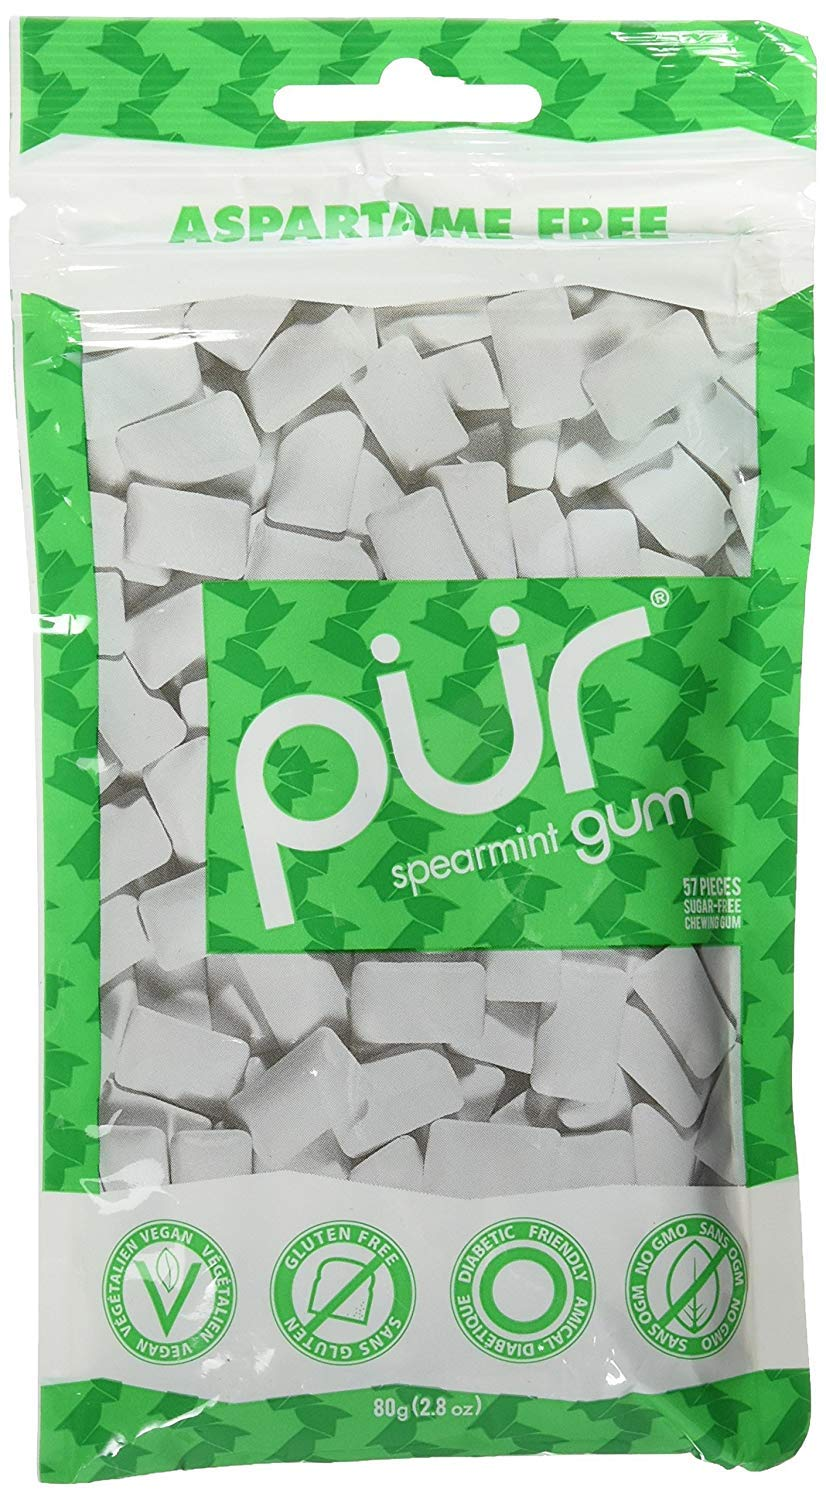 Pur Gum Spearmint, 165 Count (3 bags of 55 Count)